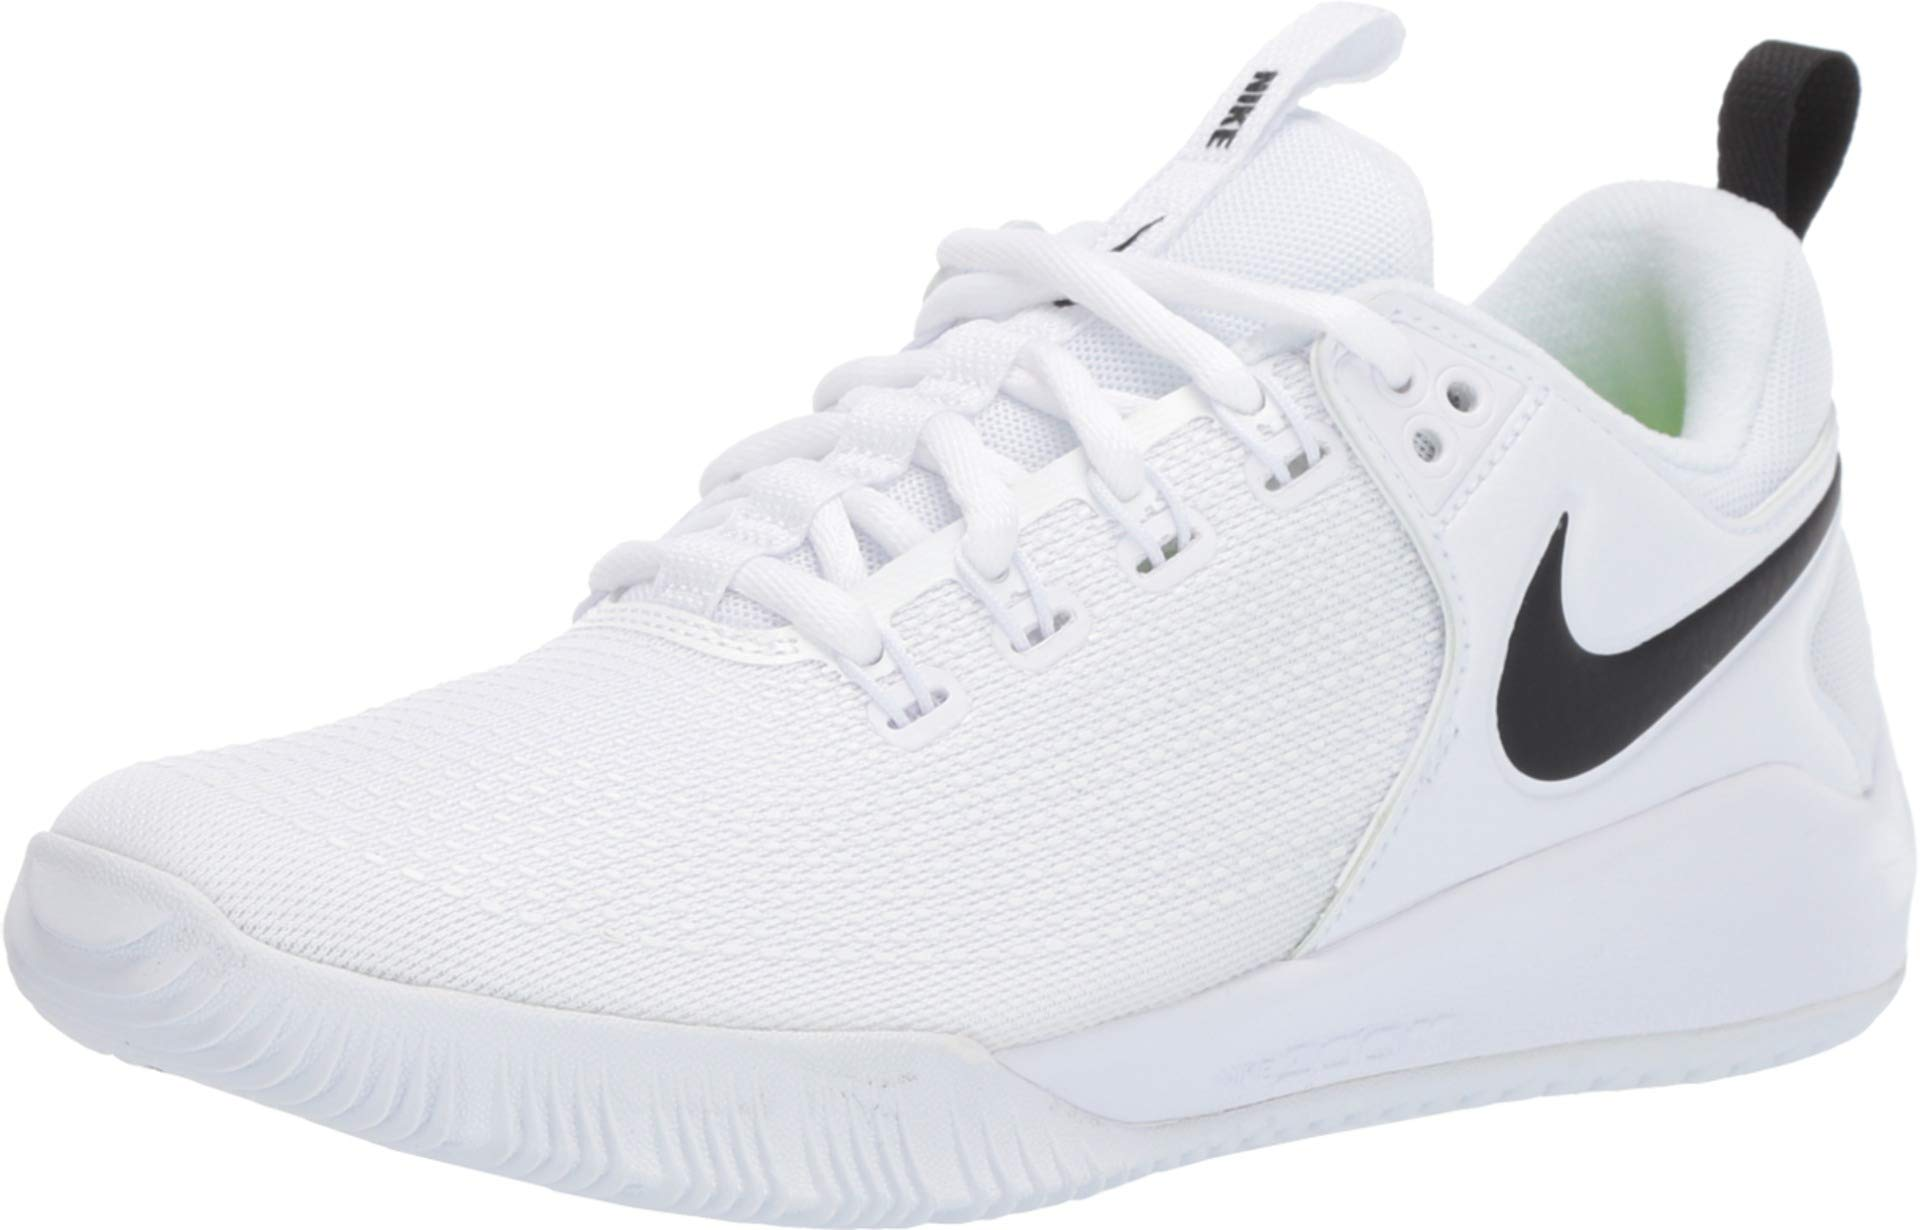 Zoom HyperAce 2 Volleyball Shoes (10.5